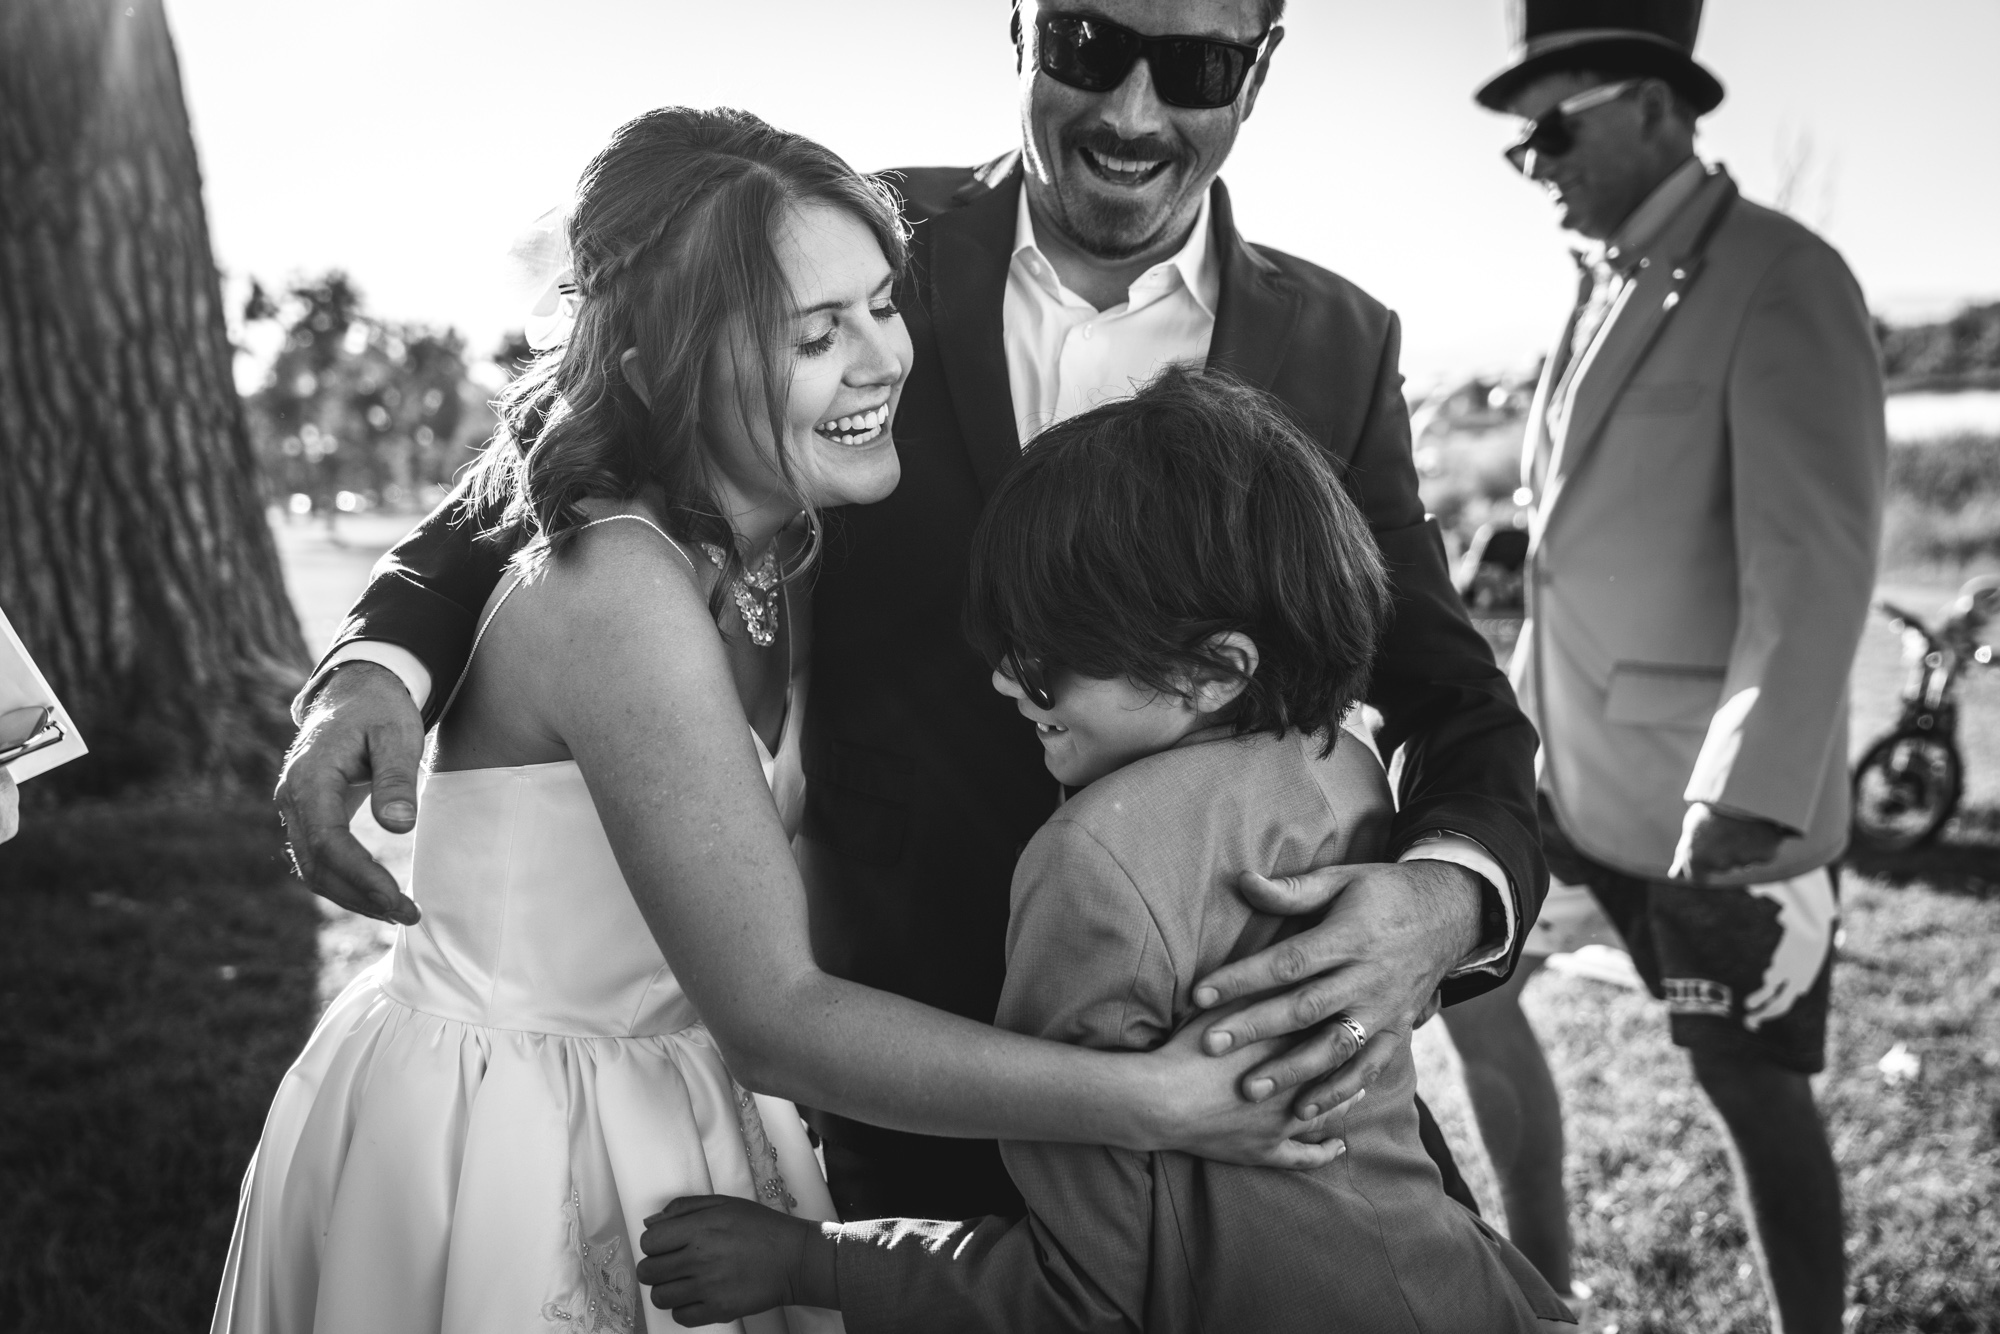 Bride, groom, and groom's young son give each other a big hug and smile in celebration of bride and groom getting married